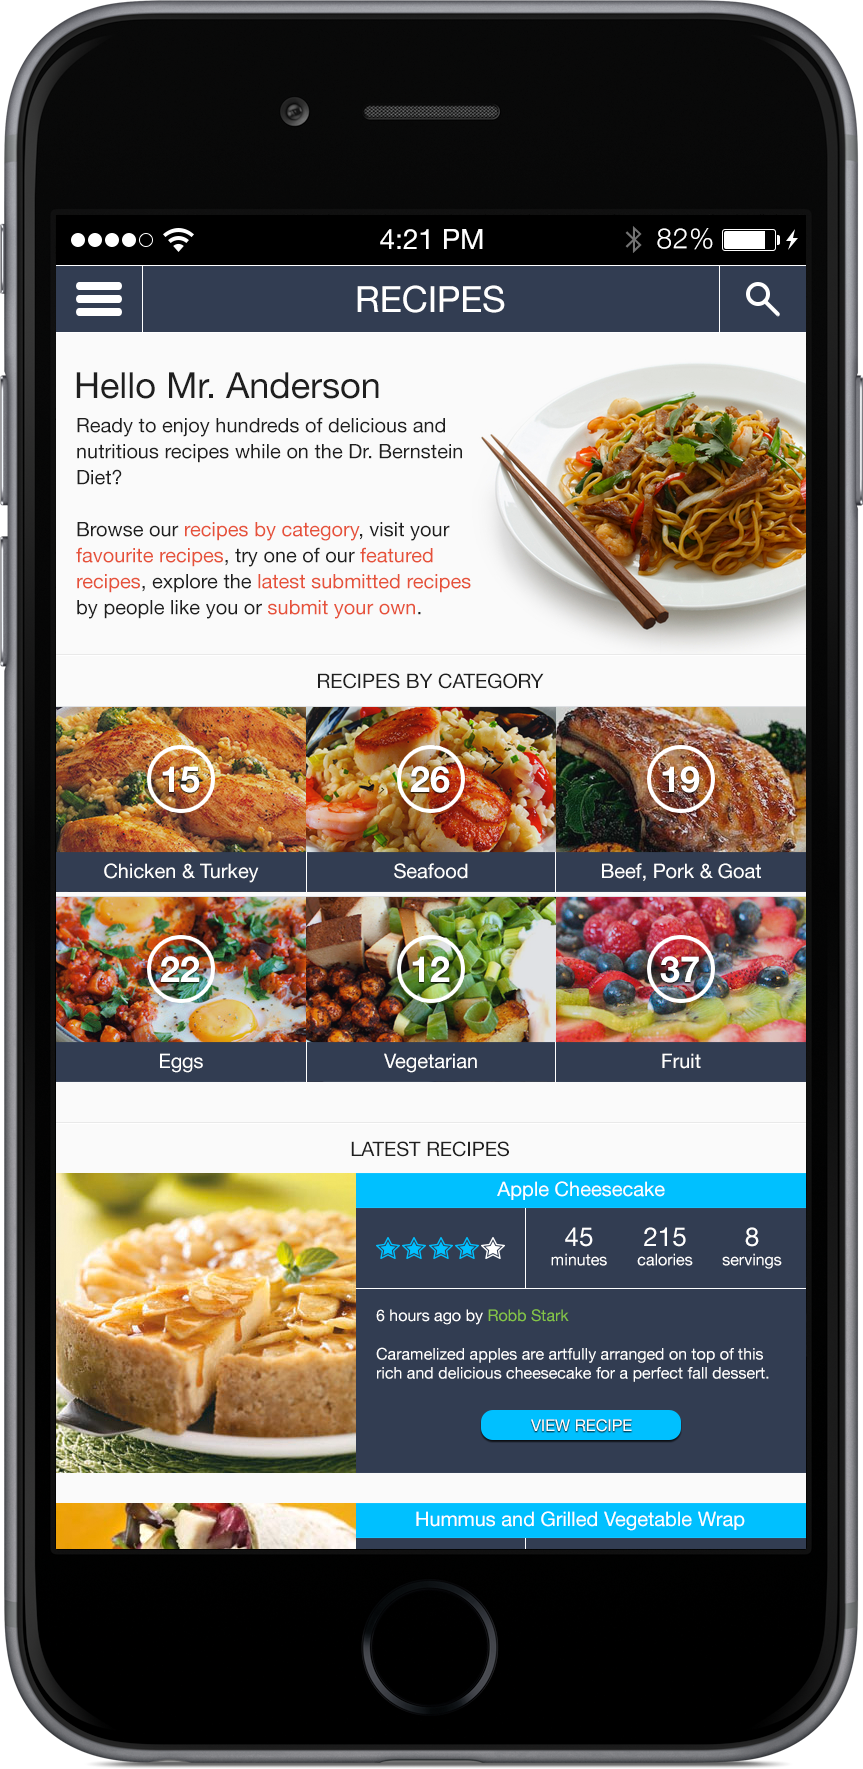 Bernstein Diet & Health Clinics – Recipes App